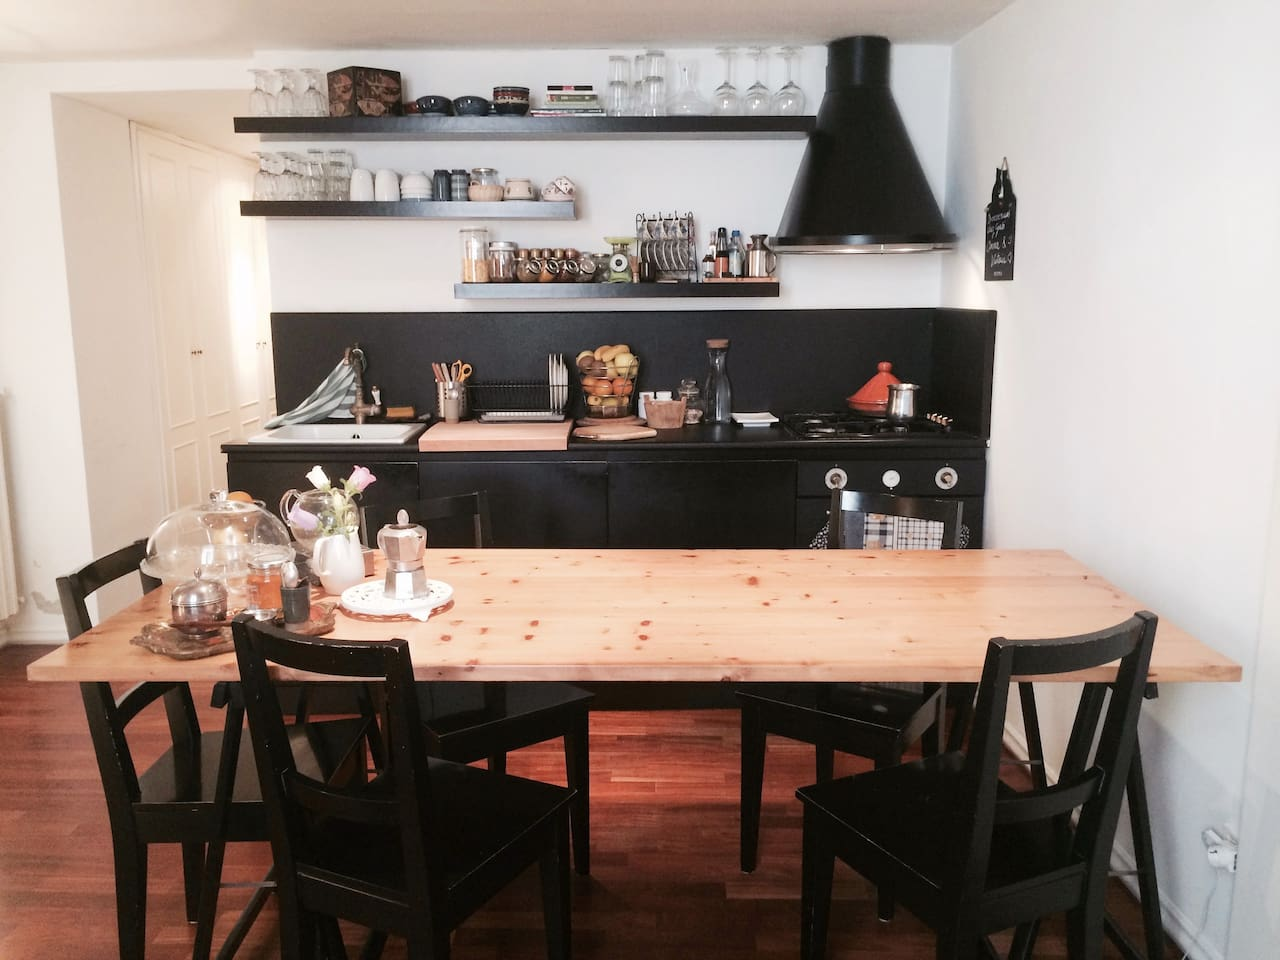 The kitchen is a shared area